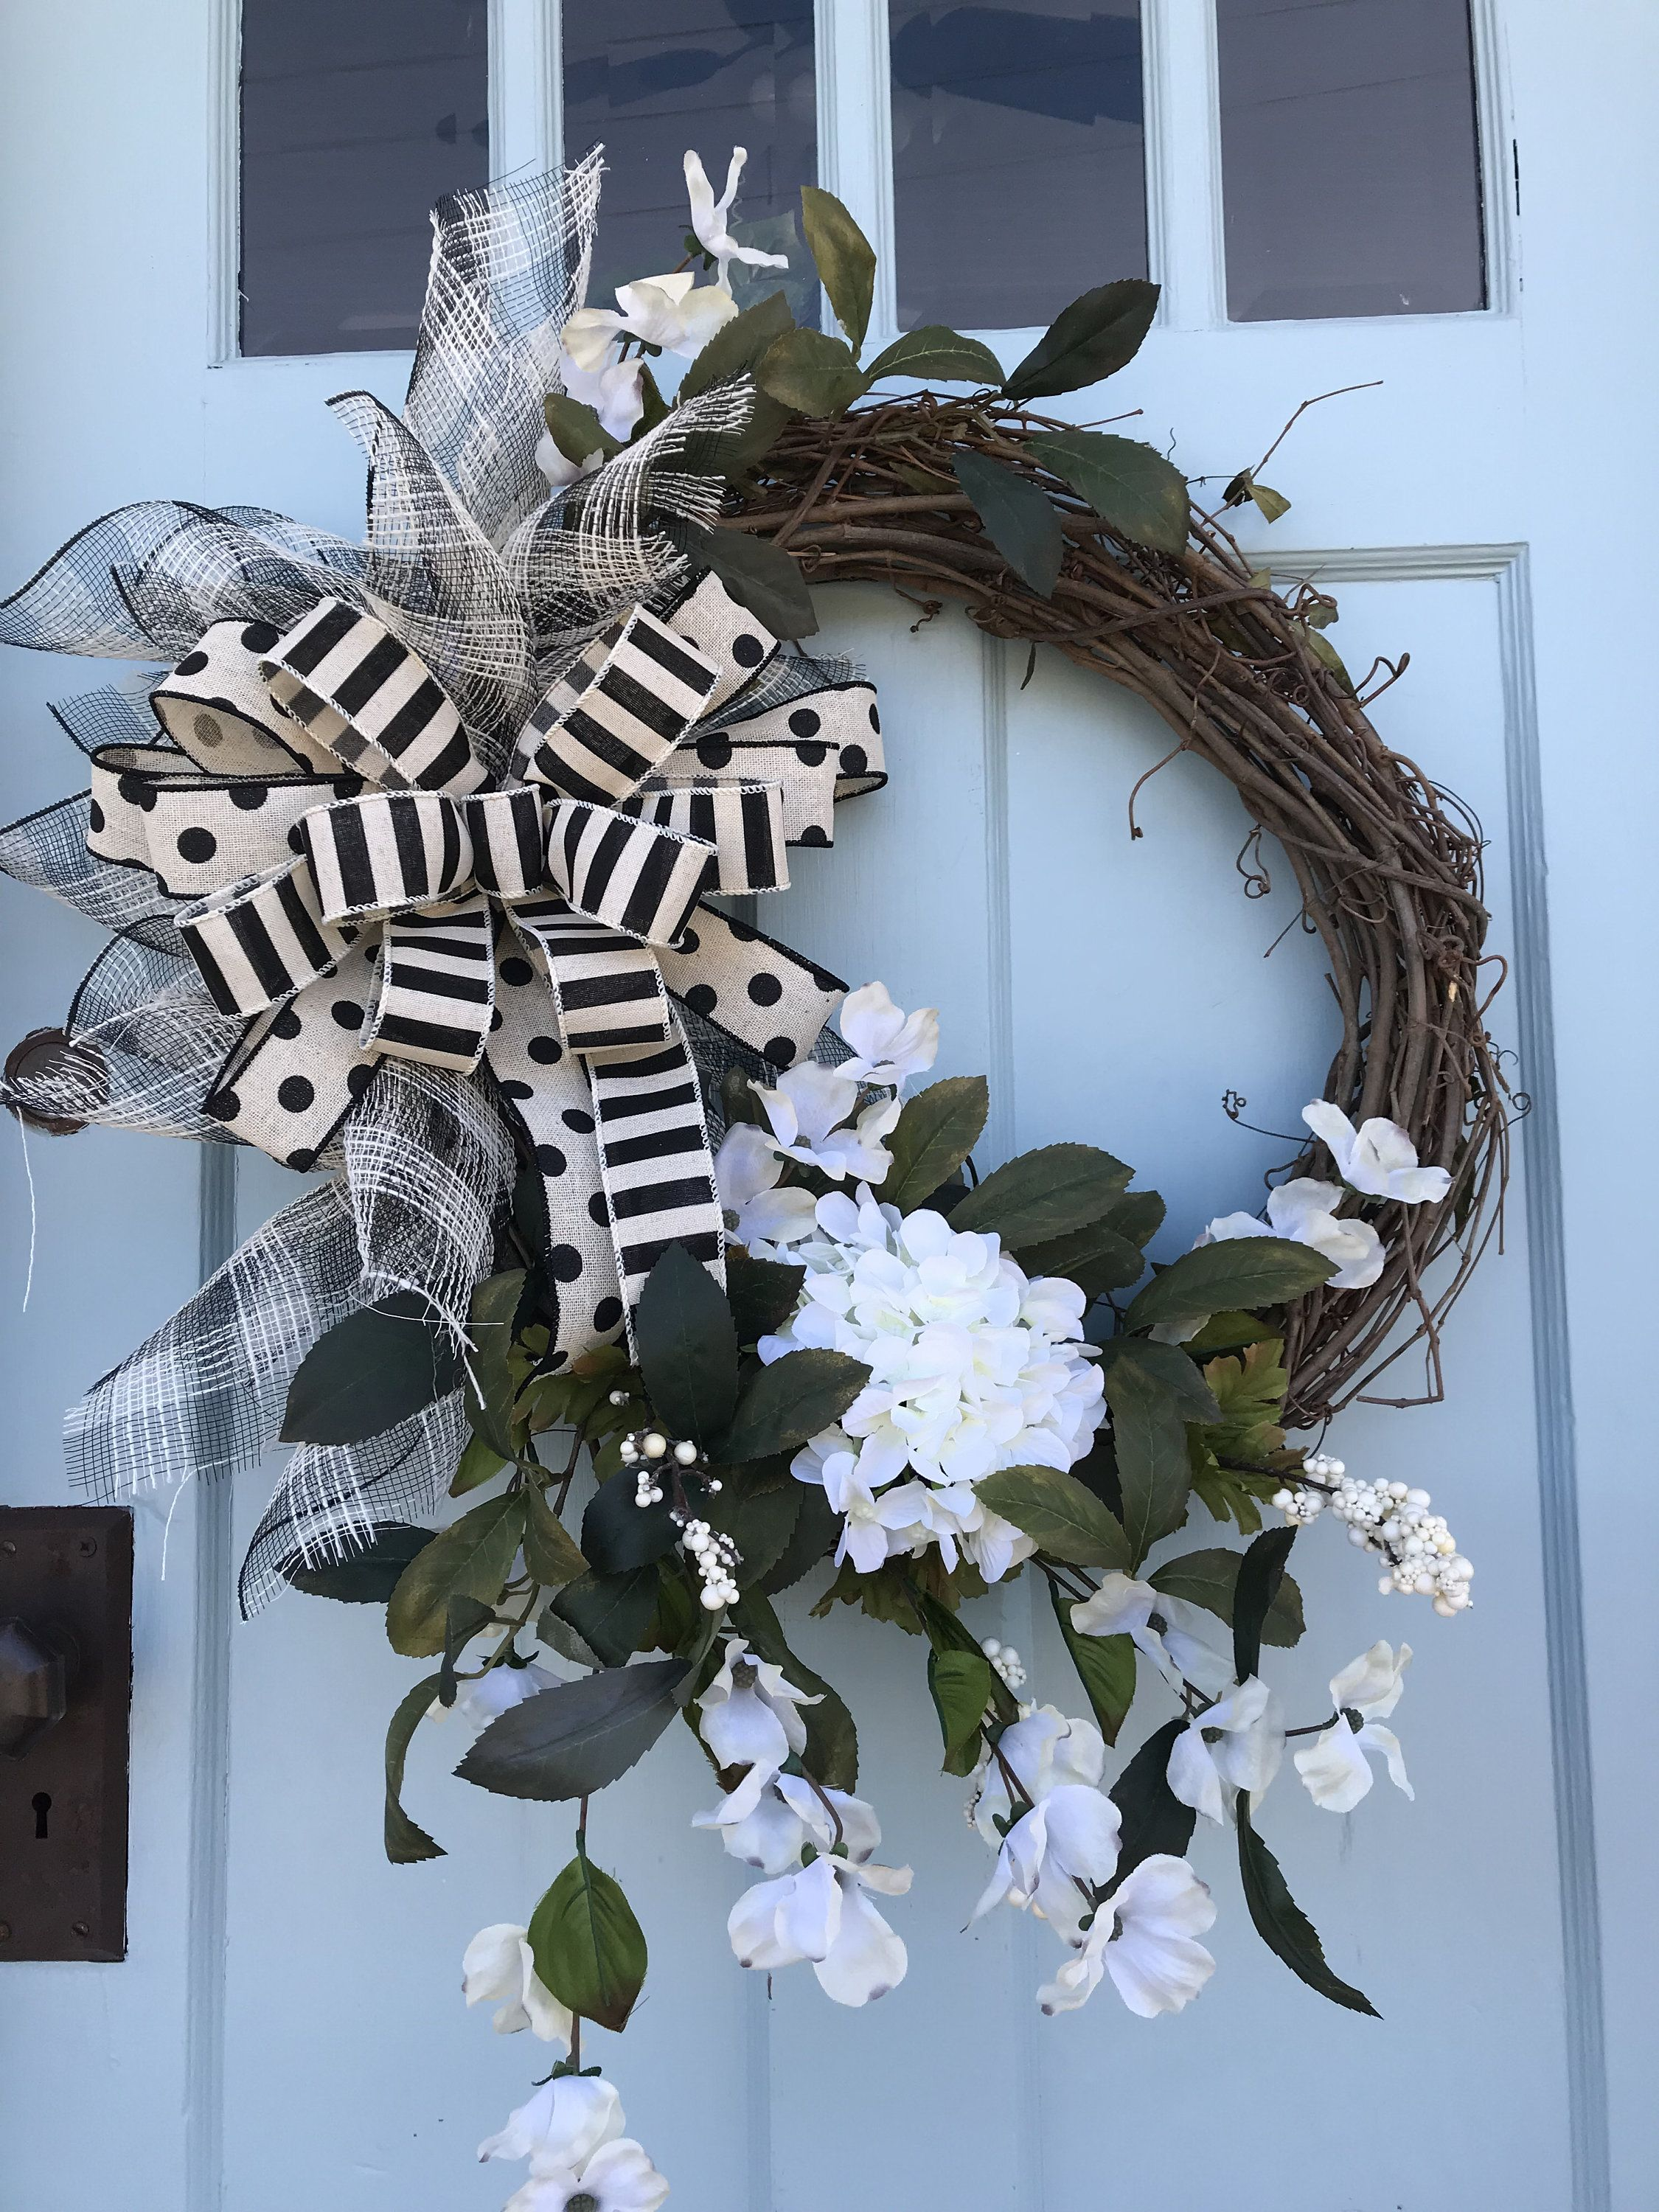 Beautifully Elegant White Floral Grapevine Wreath For Door Wreaths Wreaths For Front Door Farmhouse Christmas Deco Wreaths